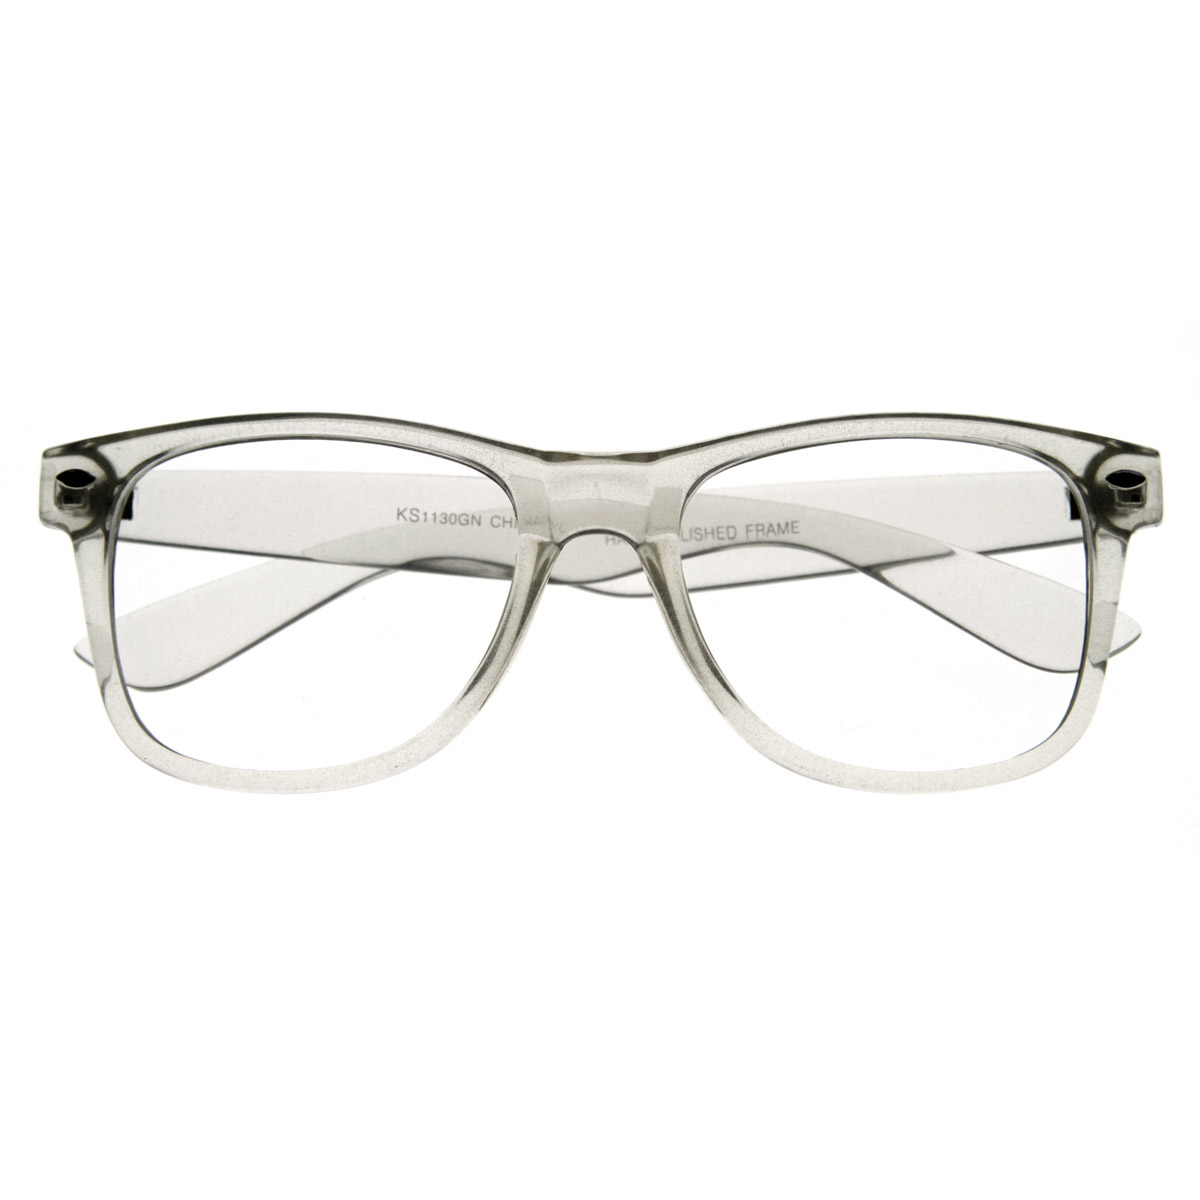 Clear Frame Glasses Retro : Clear Transparent Translucent Crystal Frame Clear Lens ...